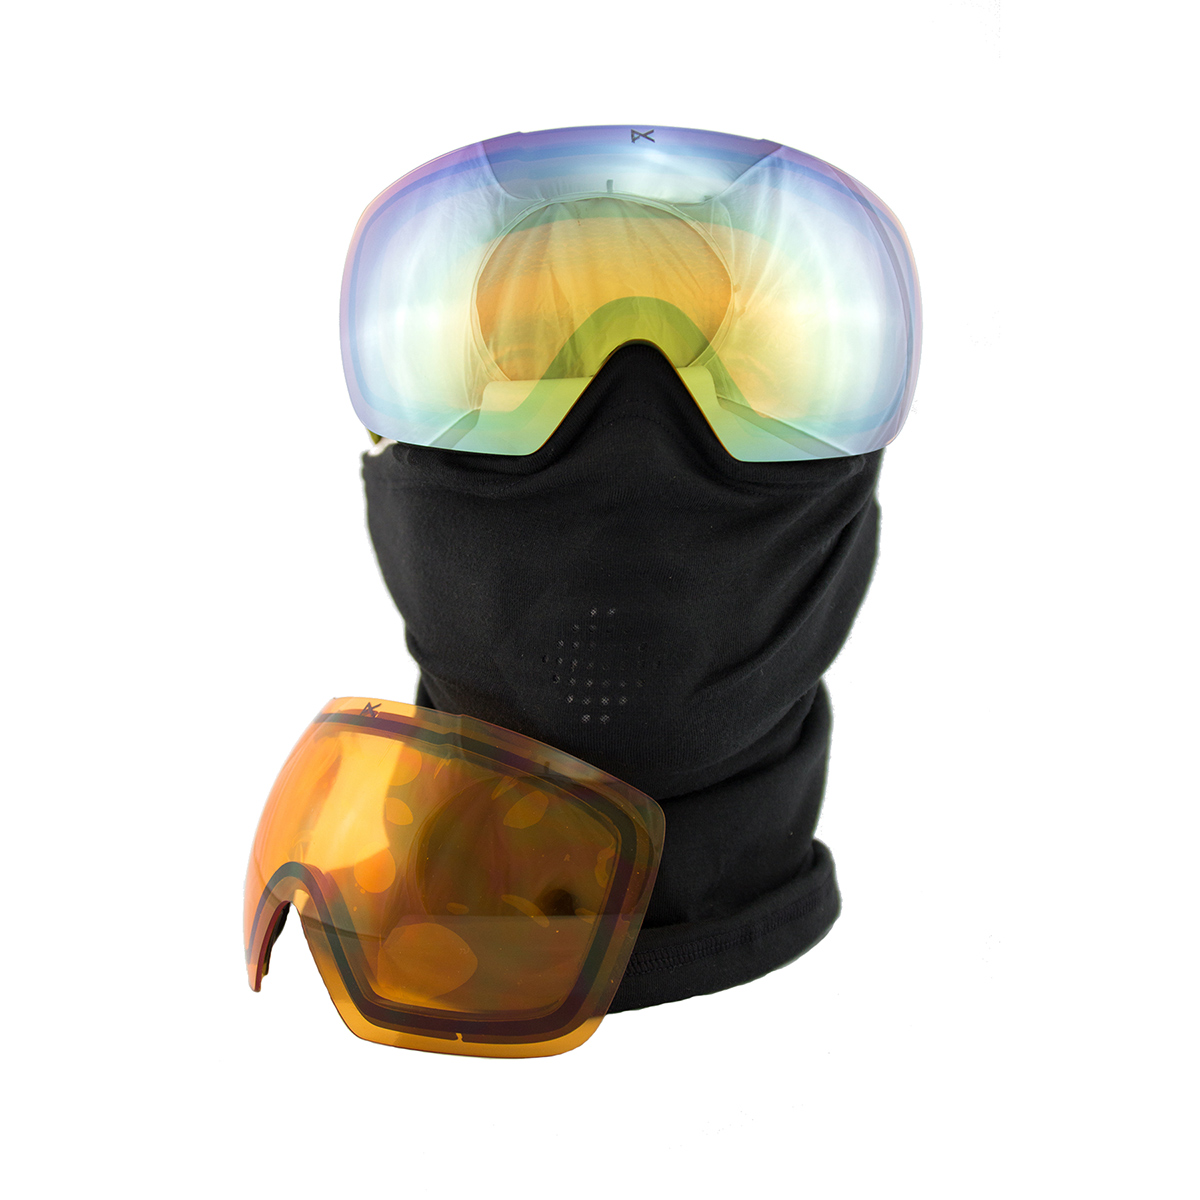 8b98d6f752d Anon MIG Snowboard Goggles with Facemask in Gold Chrome - Snow ...